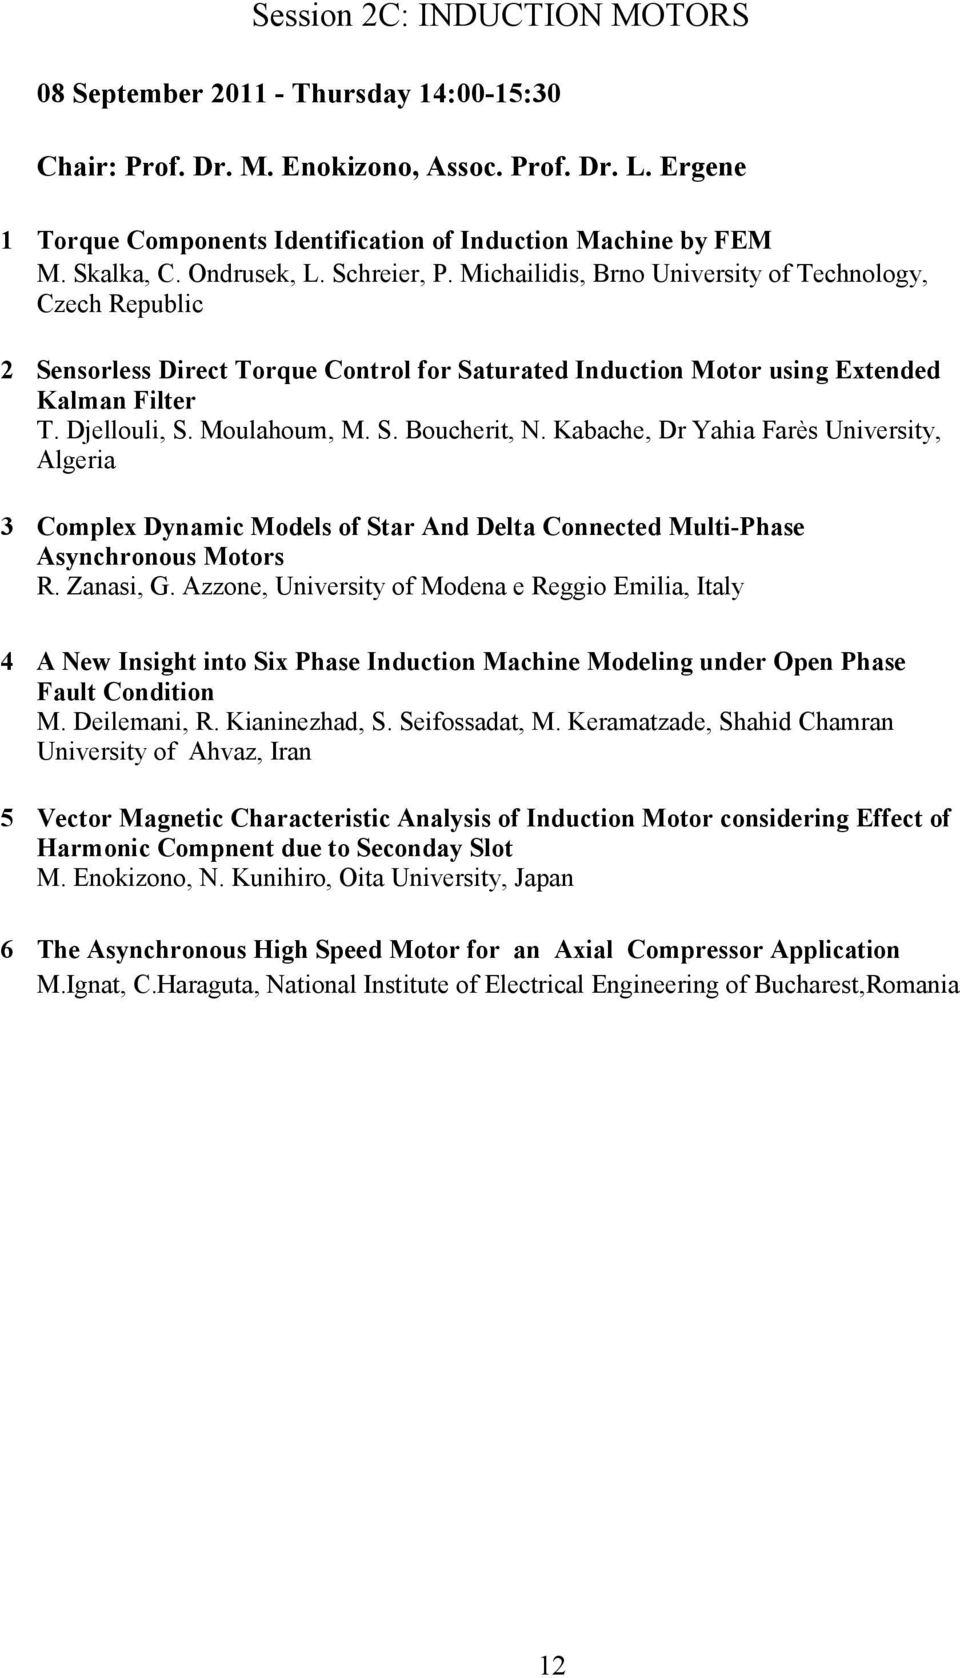 Djellouli, S. Moulahoum, M. S. Boucherit, N. Kabache, Dr Yahia Farès University, Algeria 3 Complex Dynamic Models of Star And Delta Connected Multi-Phase Asynchronous Motors R. Zanasi, G.